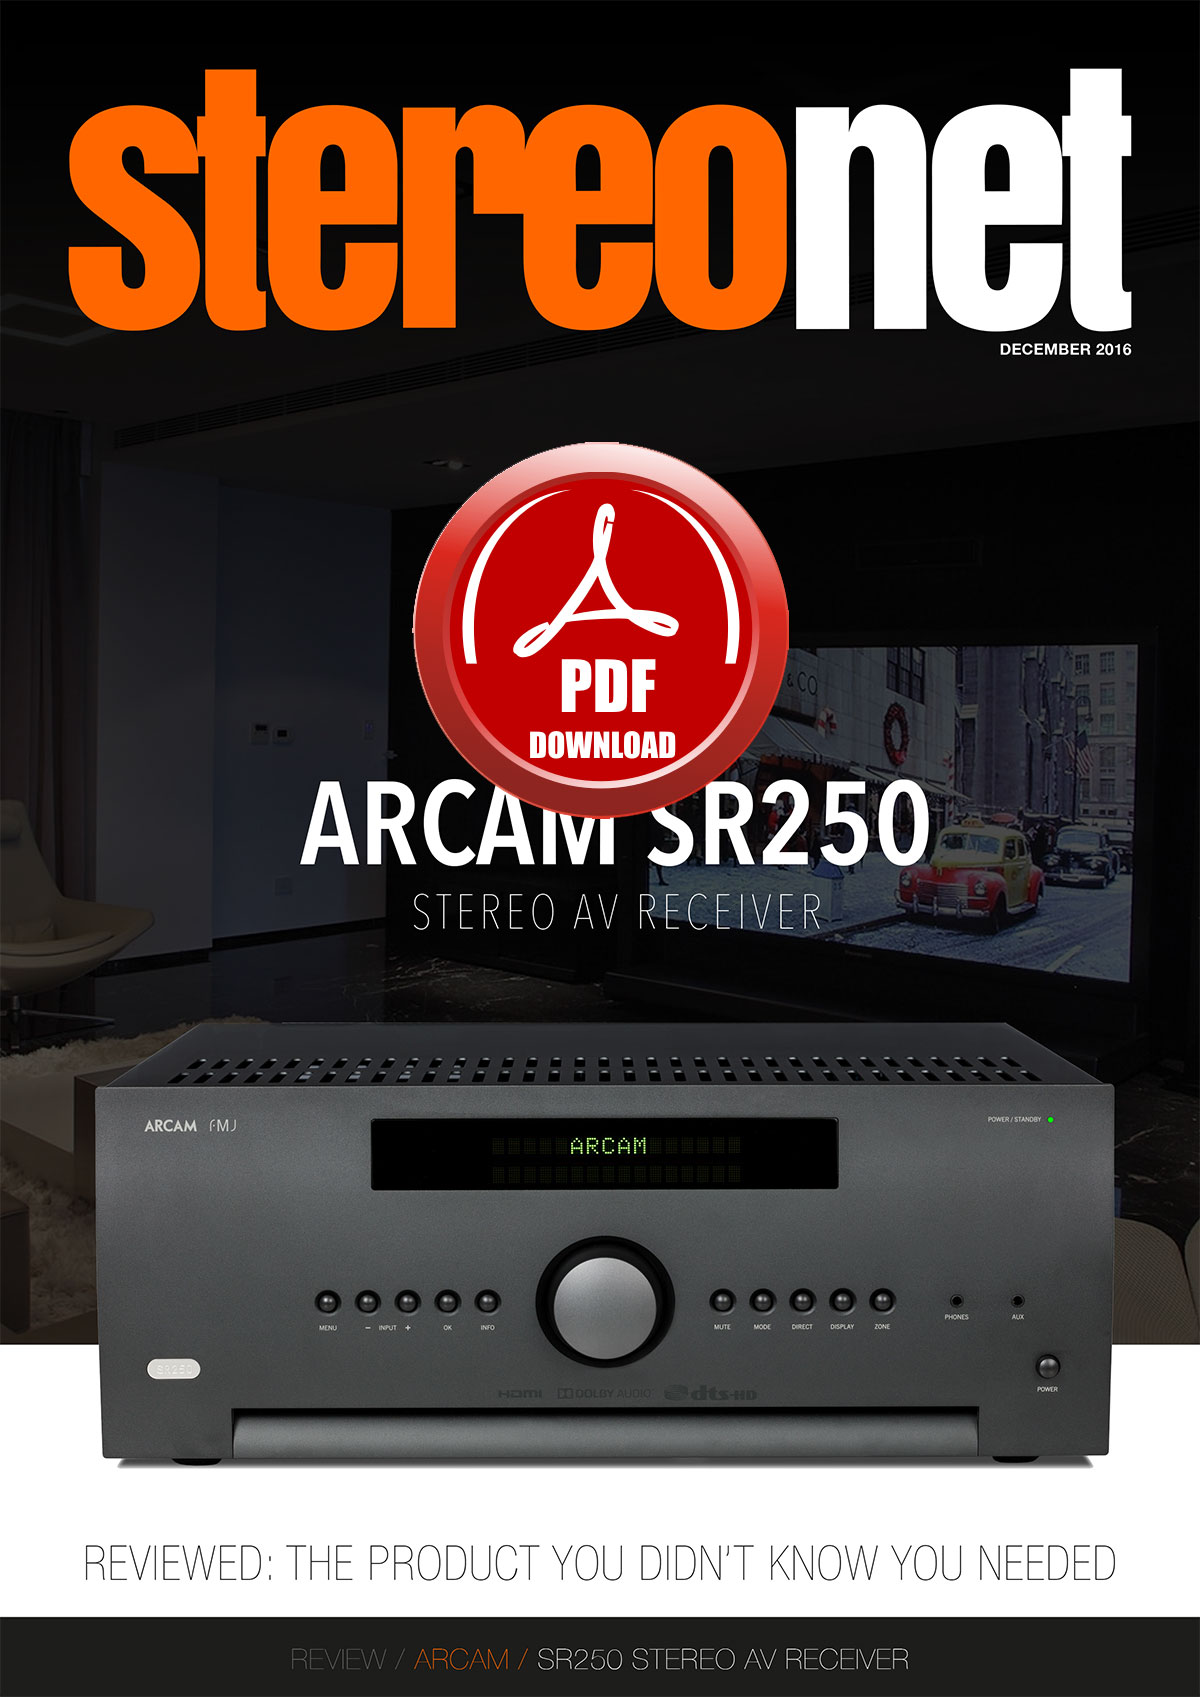 ARCAM SR250 Stereo AV Receiver Review